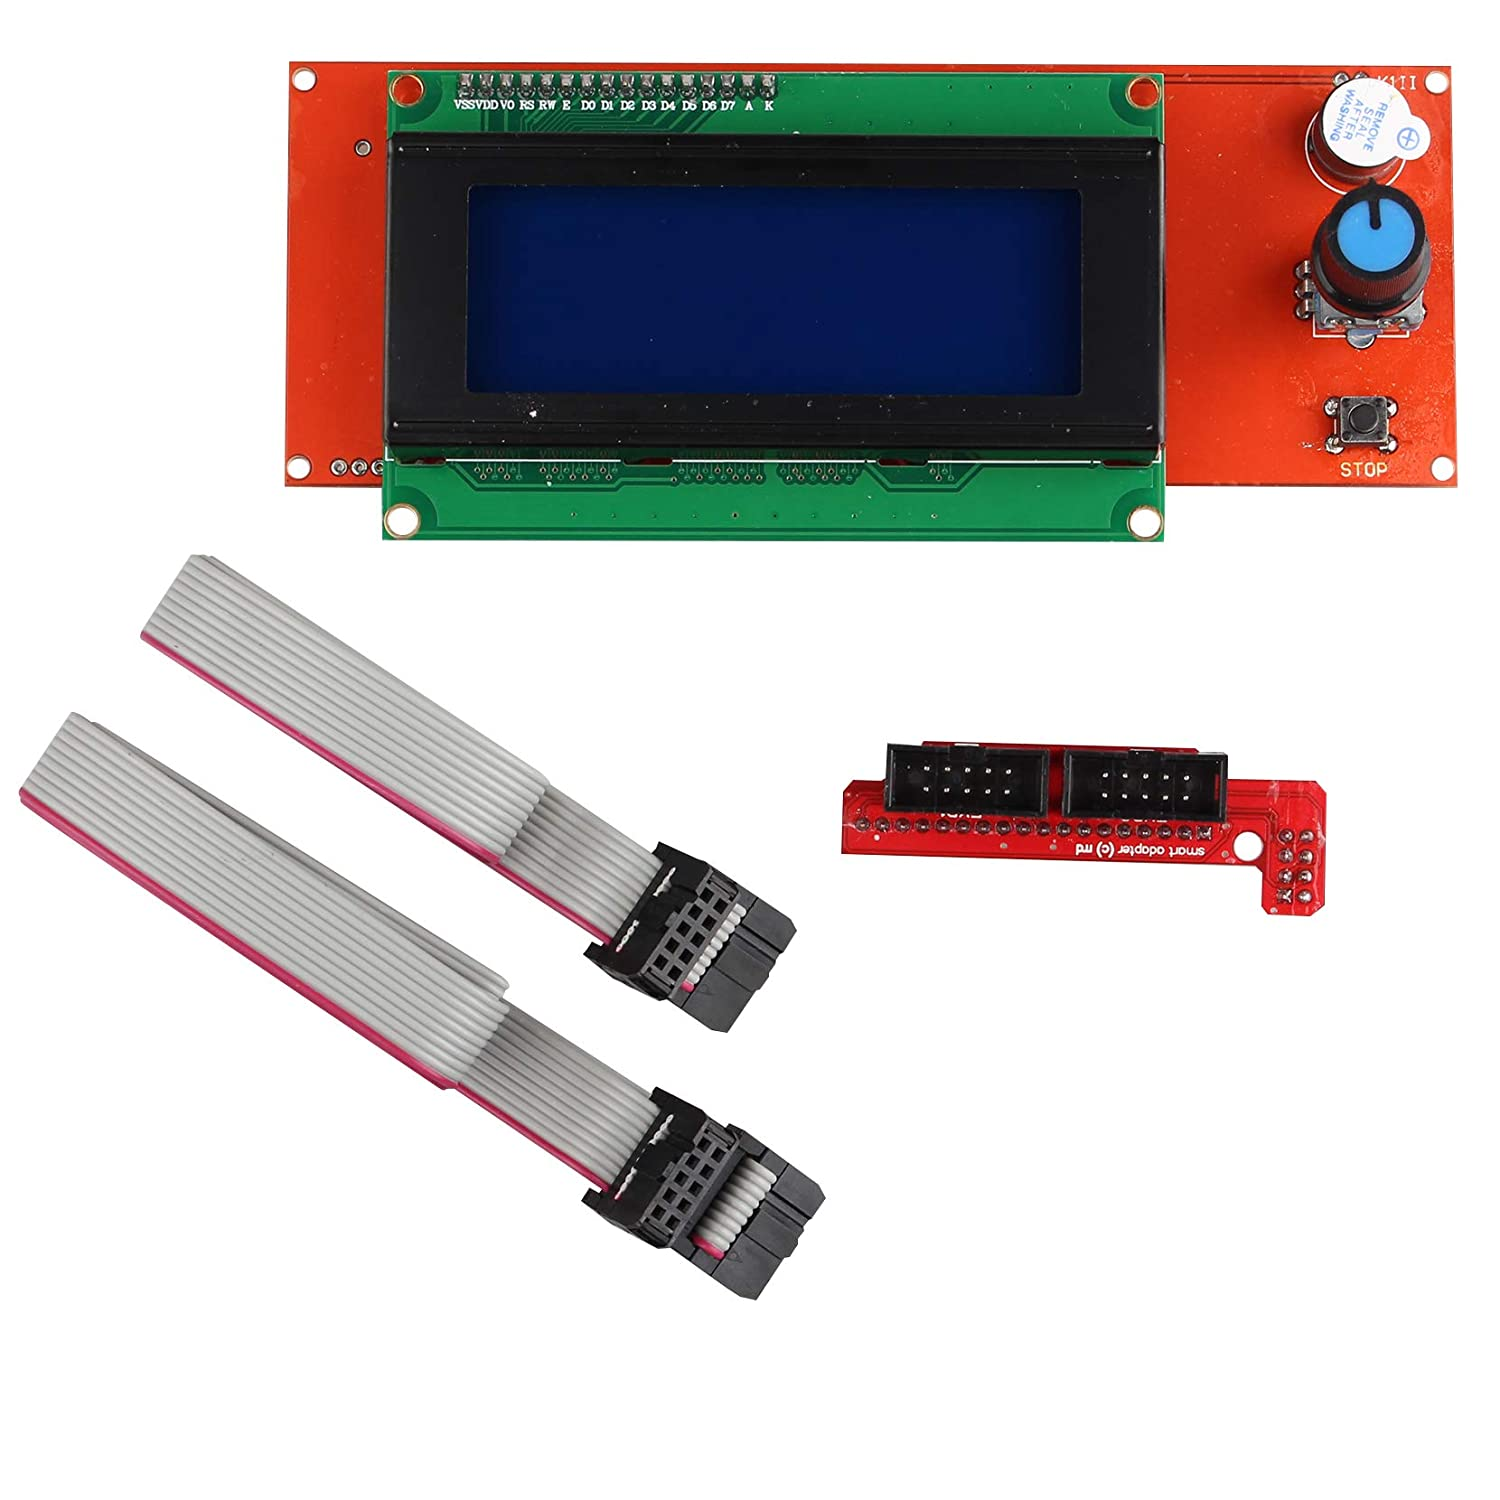 2004 LCD Graphic Smart Display Screen Controller Module with Adapter and Cable Compatible for 3D Printer Controller RAMPS 1.4 Arduino Mega Arduino RepRap Pololu Shield